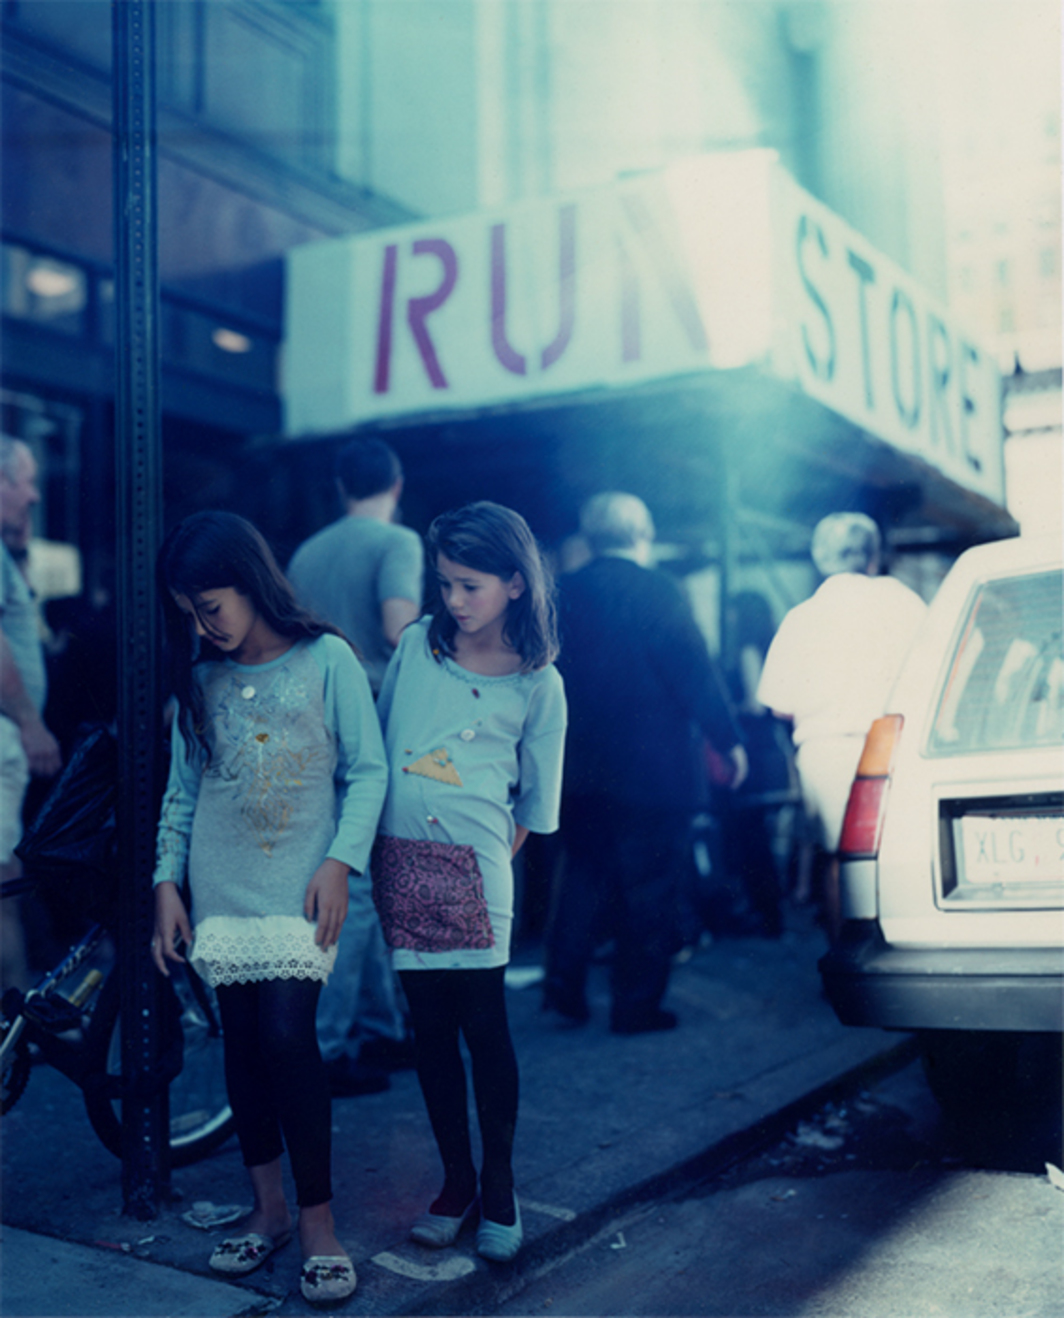 Bibi Borthwick and Mai Aurell model RUN 11 outside Susan Cianciolo's RUN Store, New York, 2001. Photo: Anette Aurell.